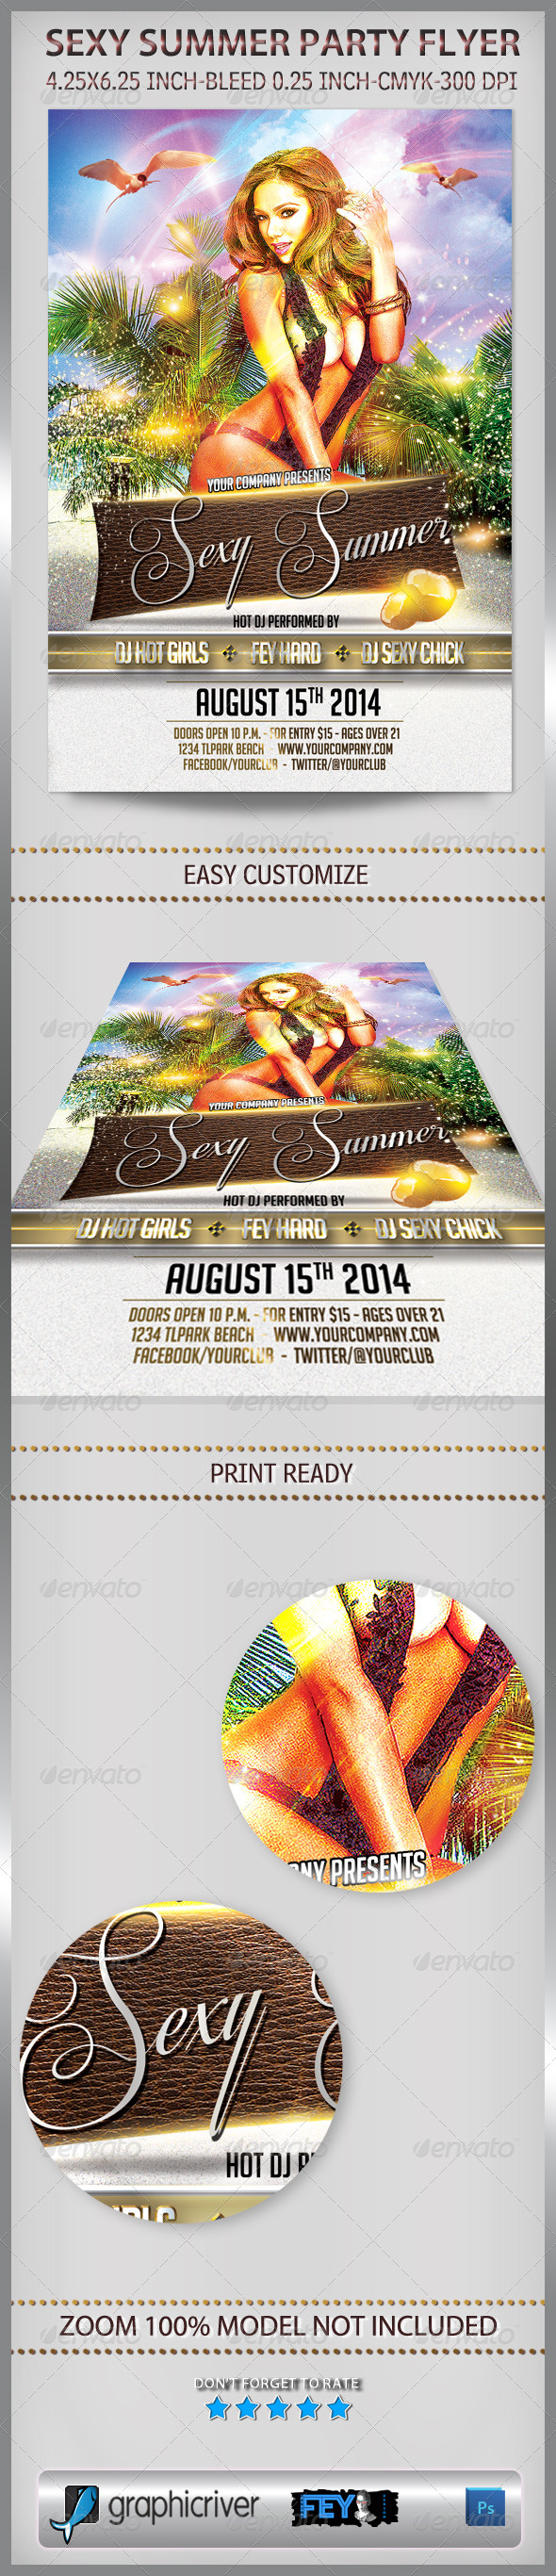 Sexy Summer Party Flyer - Events Flyers